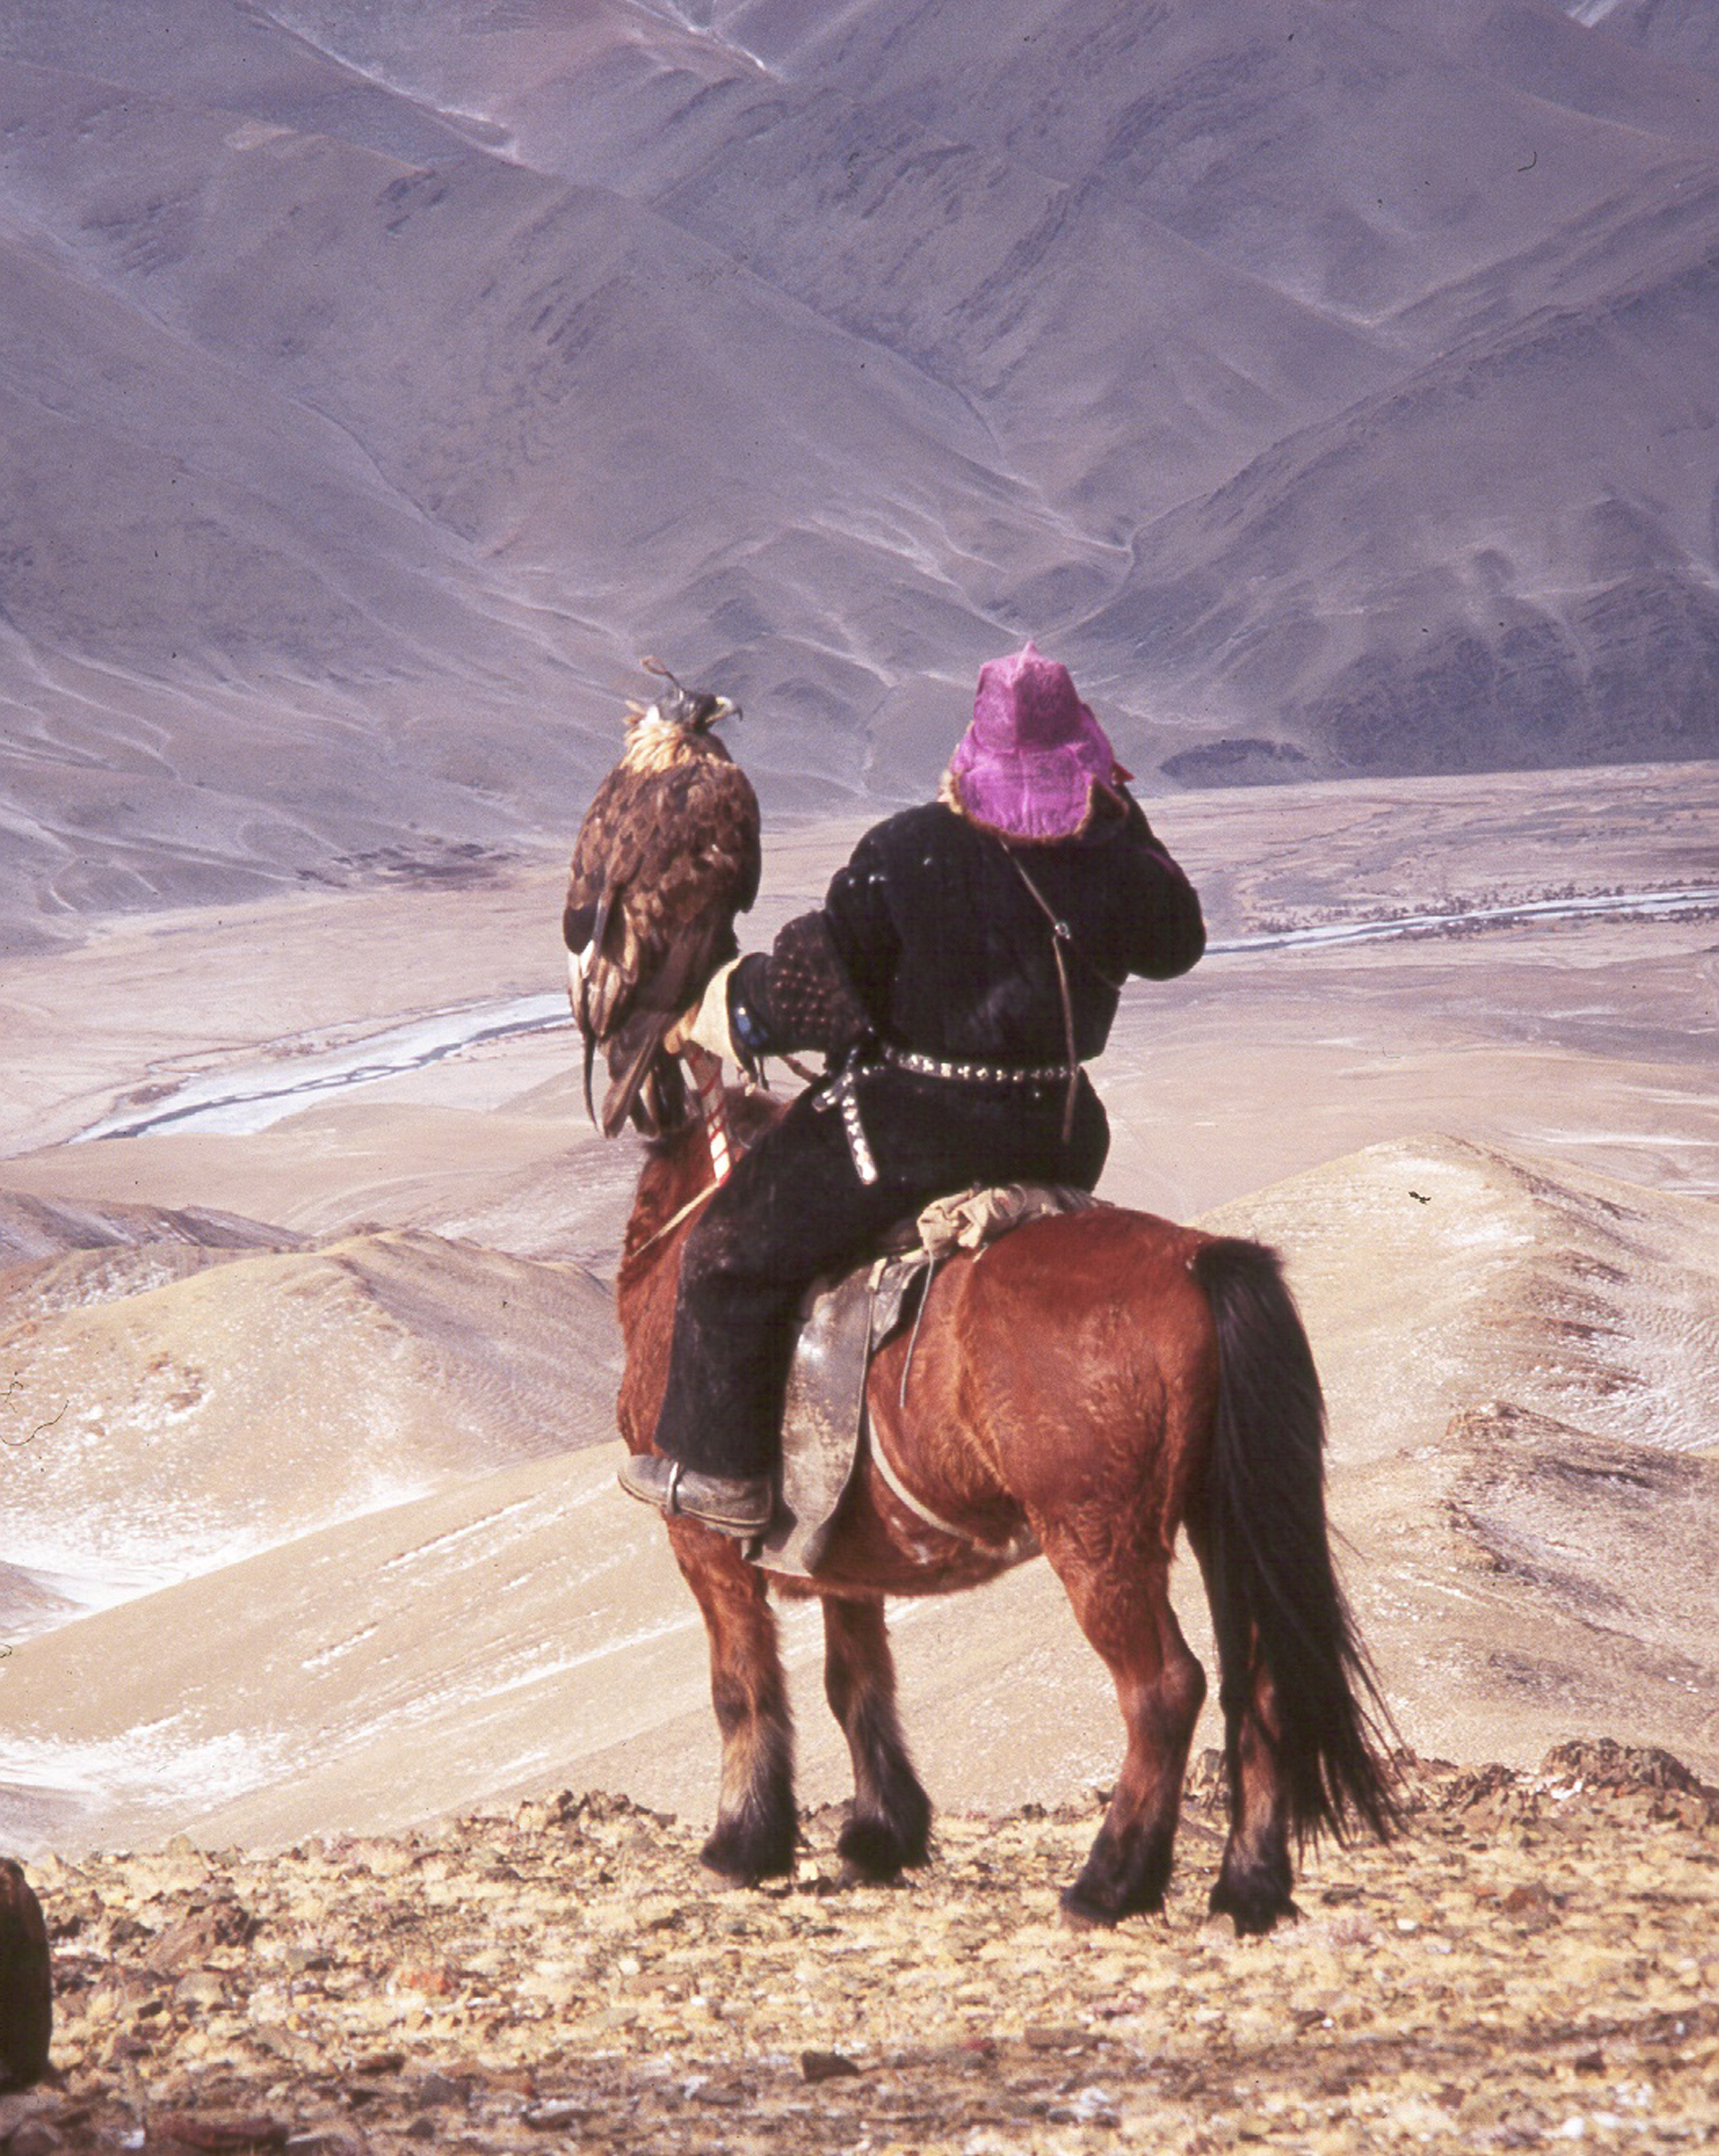 A Mongolian falconer on horseback surveys the landscape with a Golden Eagle perched on his arm